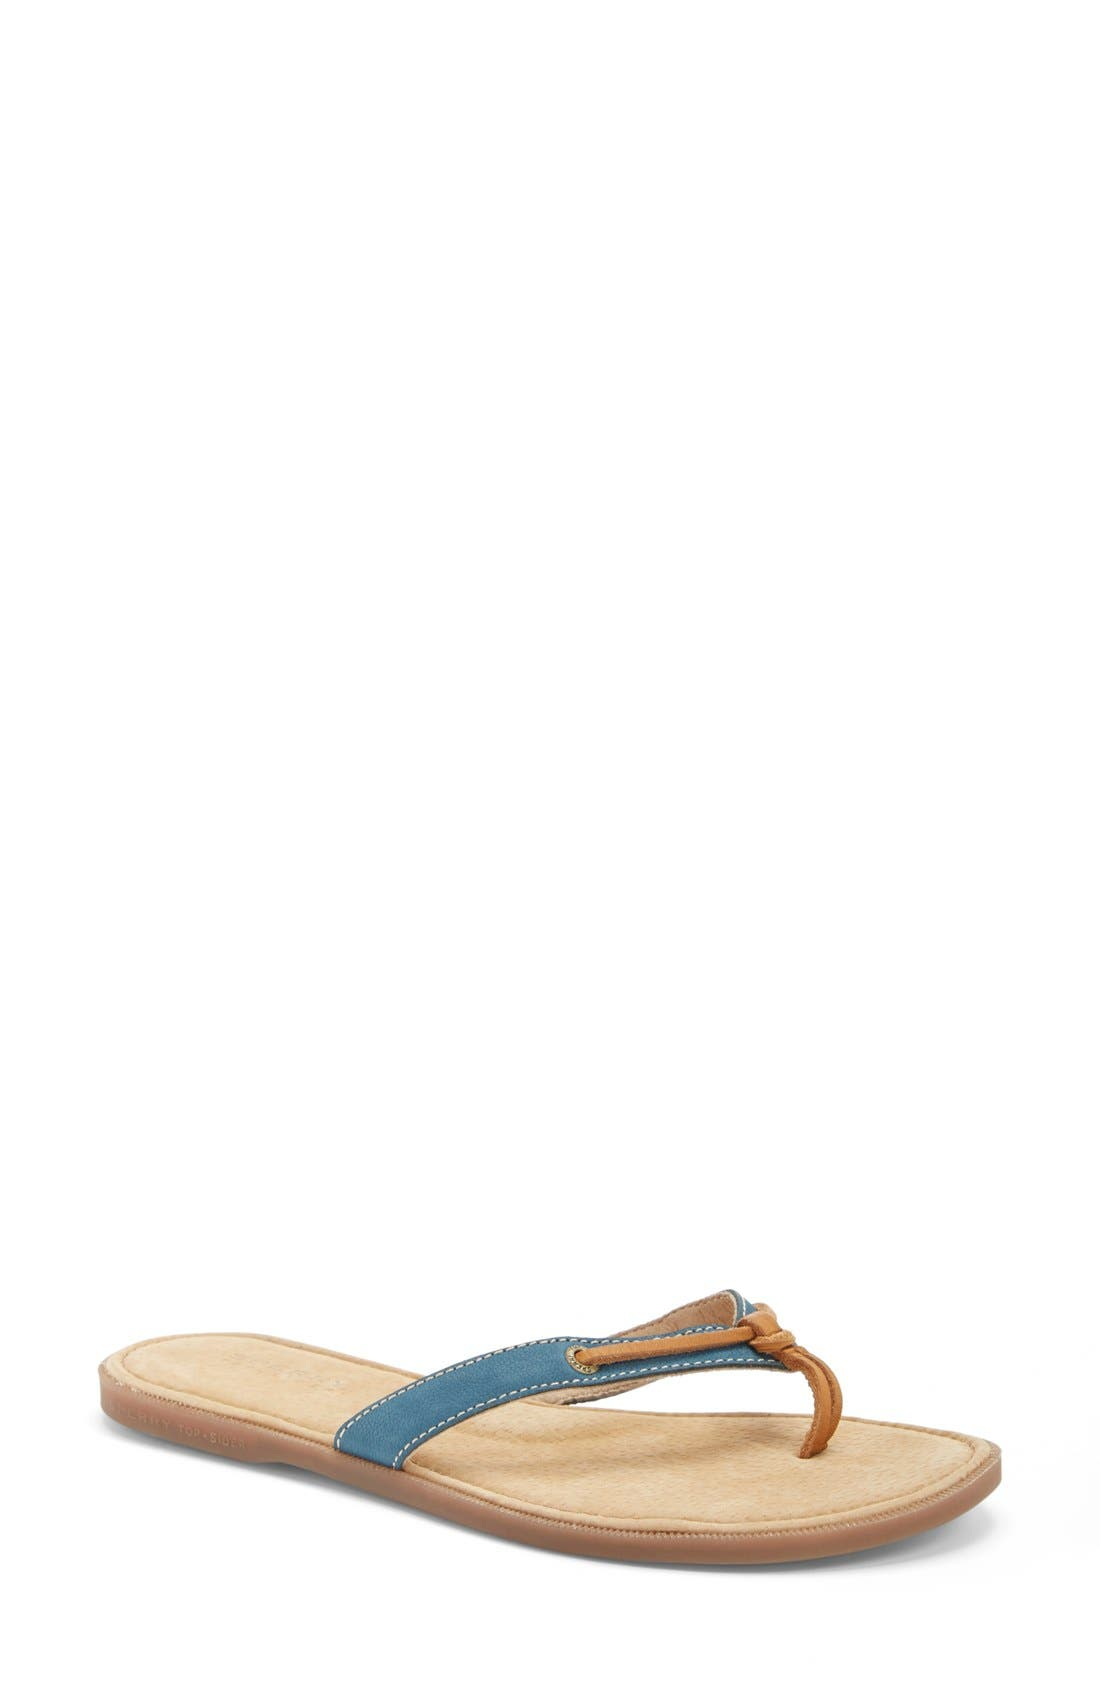 Main Image - Sperry 'Calla' Sandal